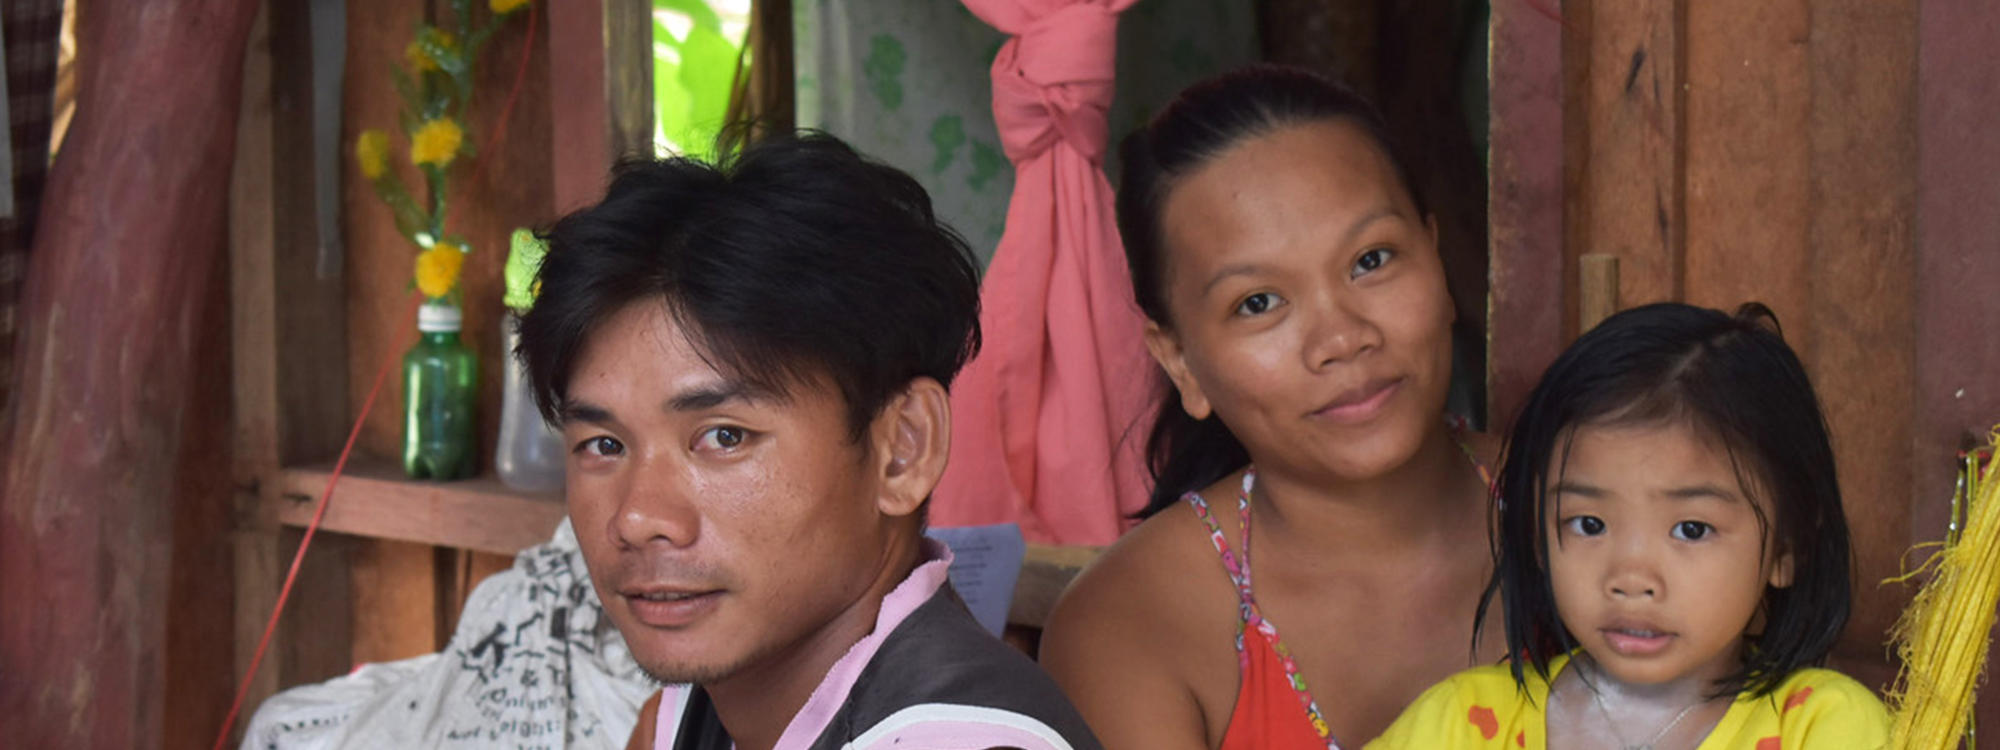 A family of three in the Philippines